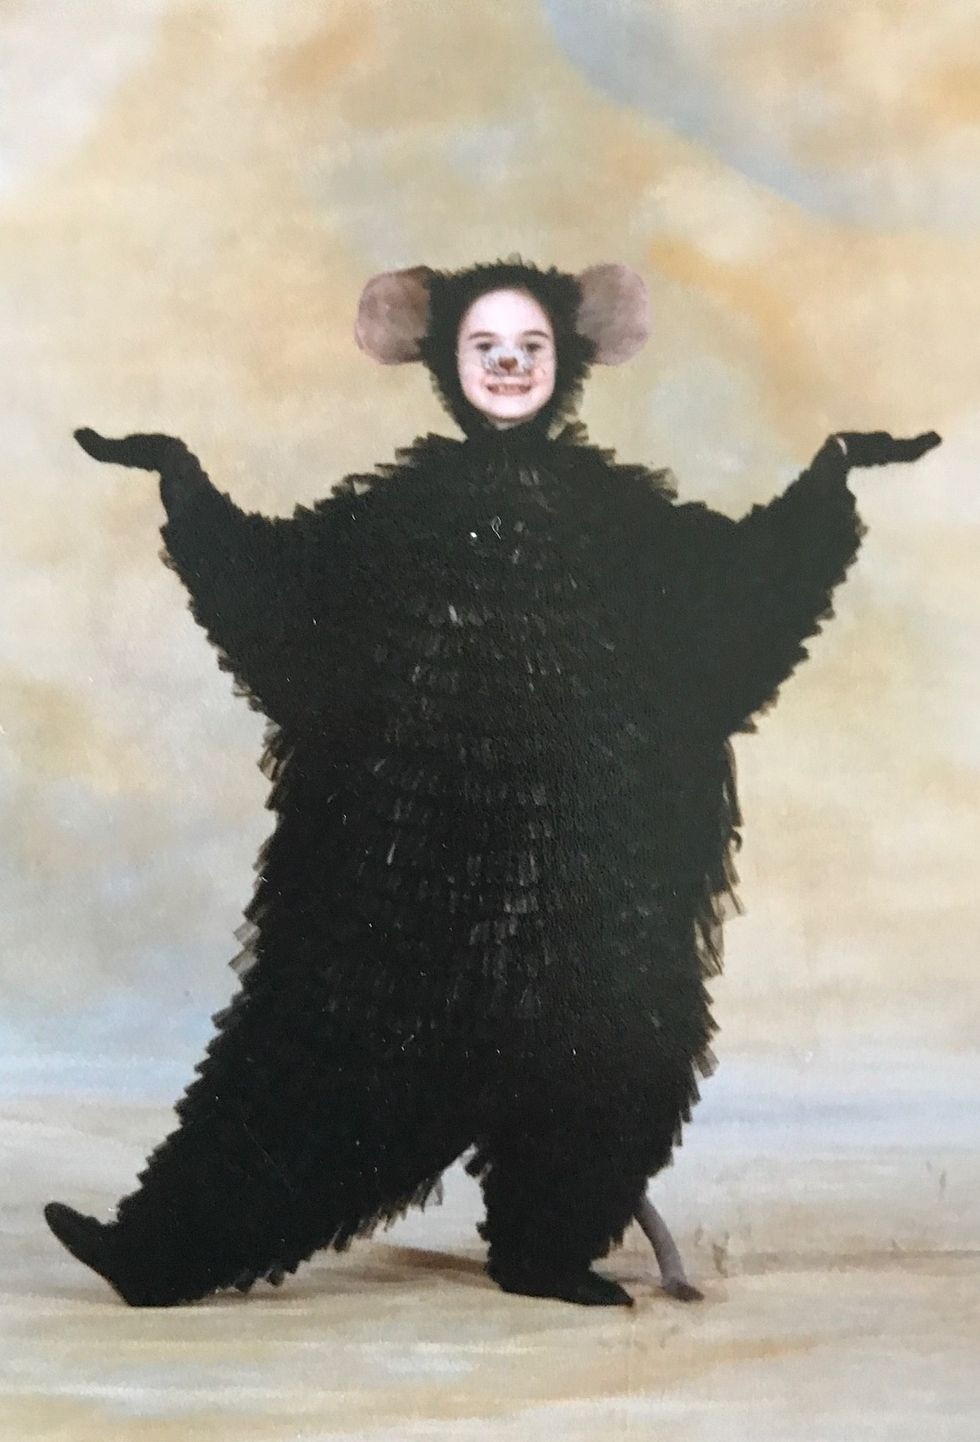 Elizabeth Powell, as a child, poses in a fluffy black mouse costume and headpiece. She wears makeup of a mouse nose and whiskers on her face.